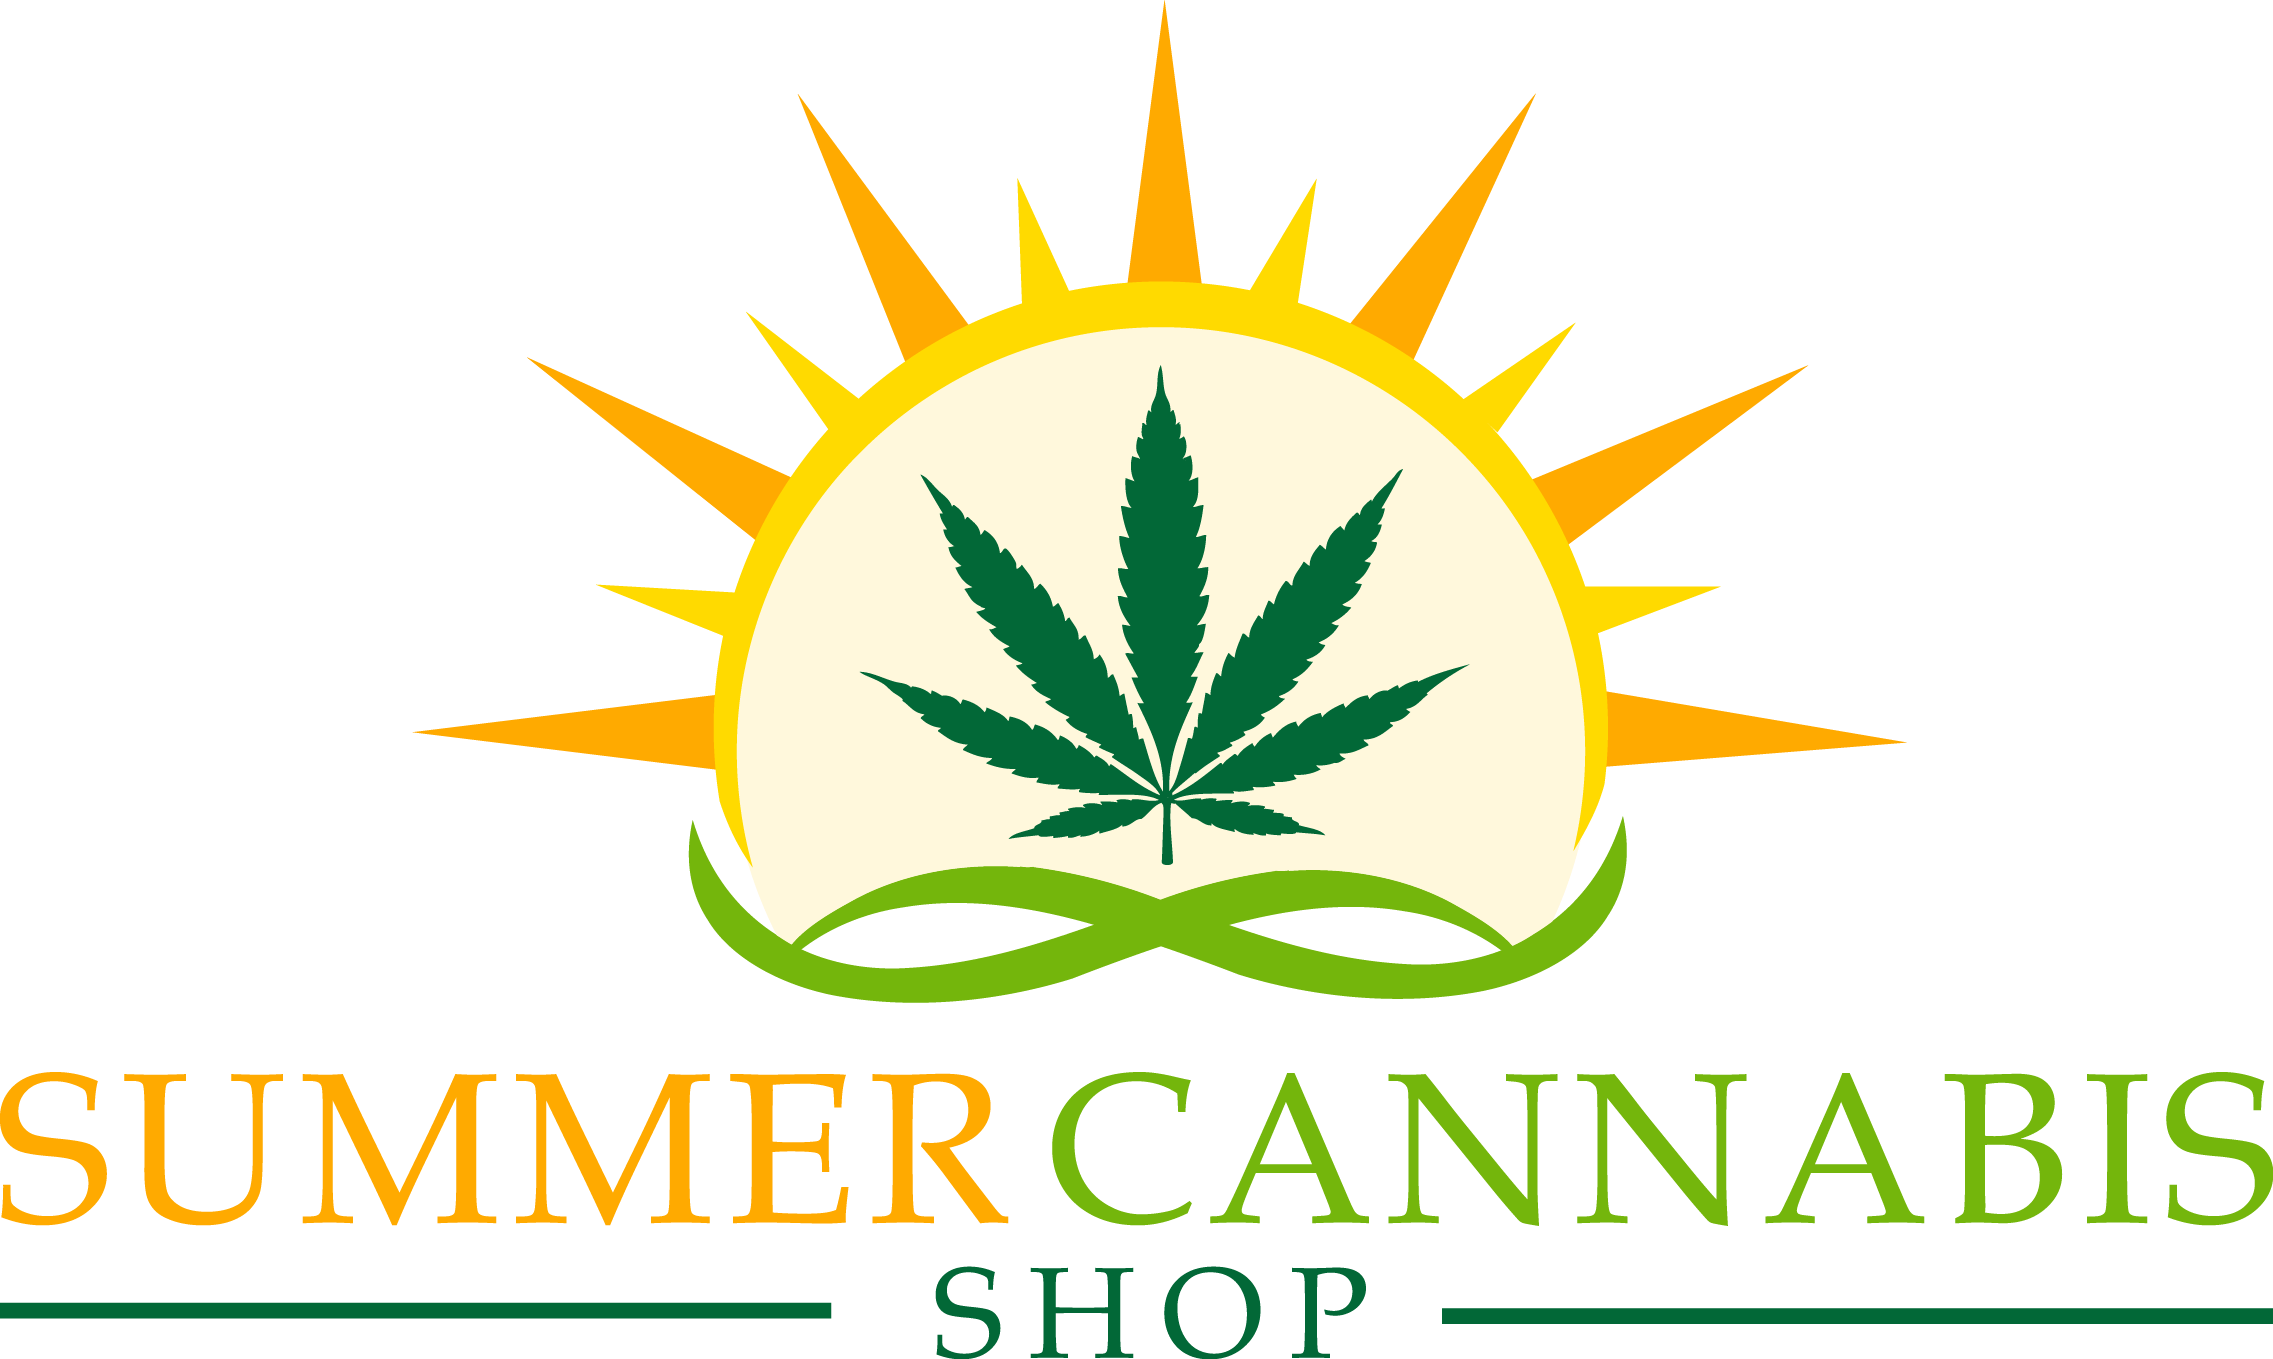 SUMMER CANNABIS SHOP